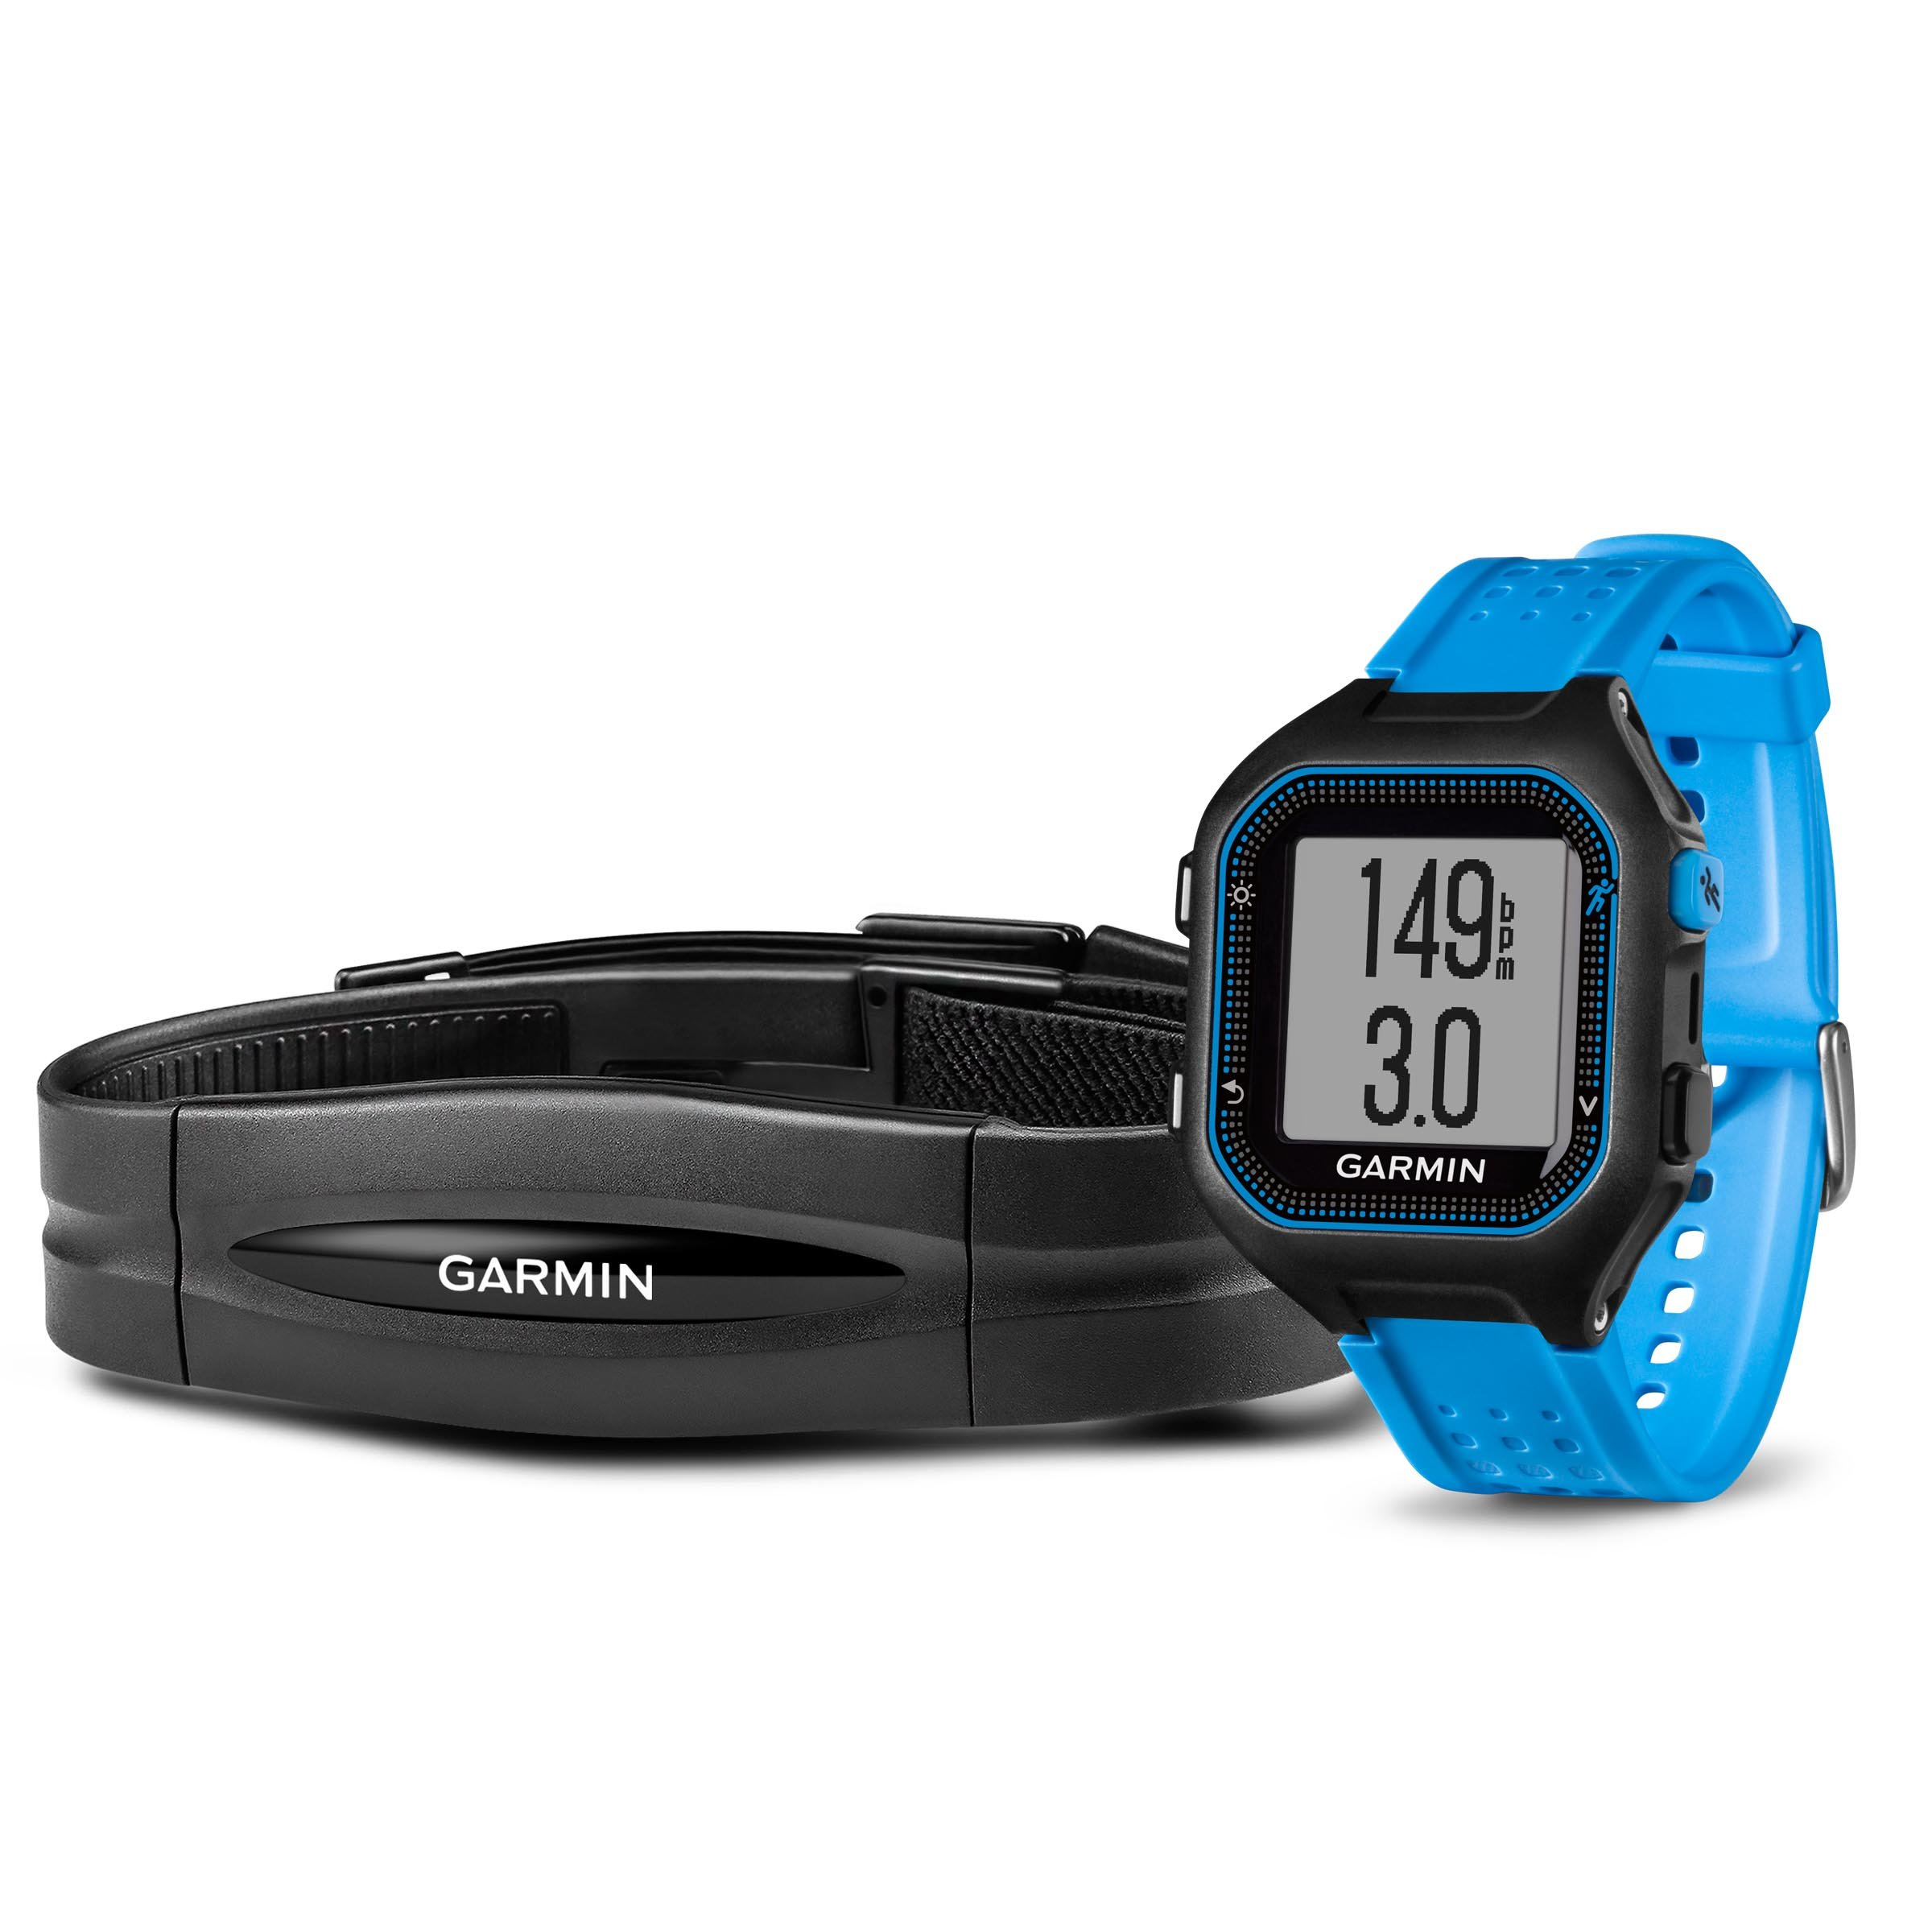 Garmin Forerunner 25 Bundle with Heart Rate Monitor (Large) - Black and Blue by Garmin